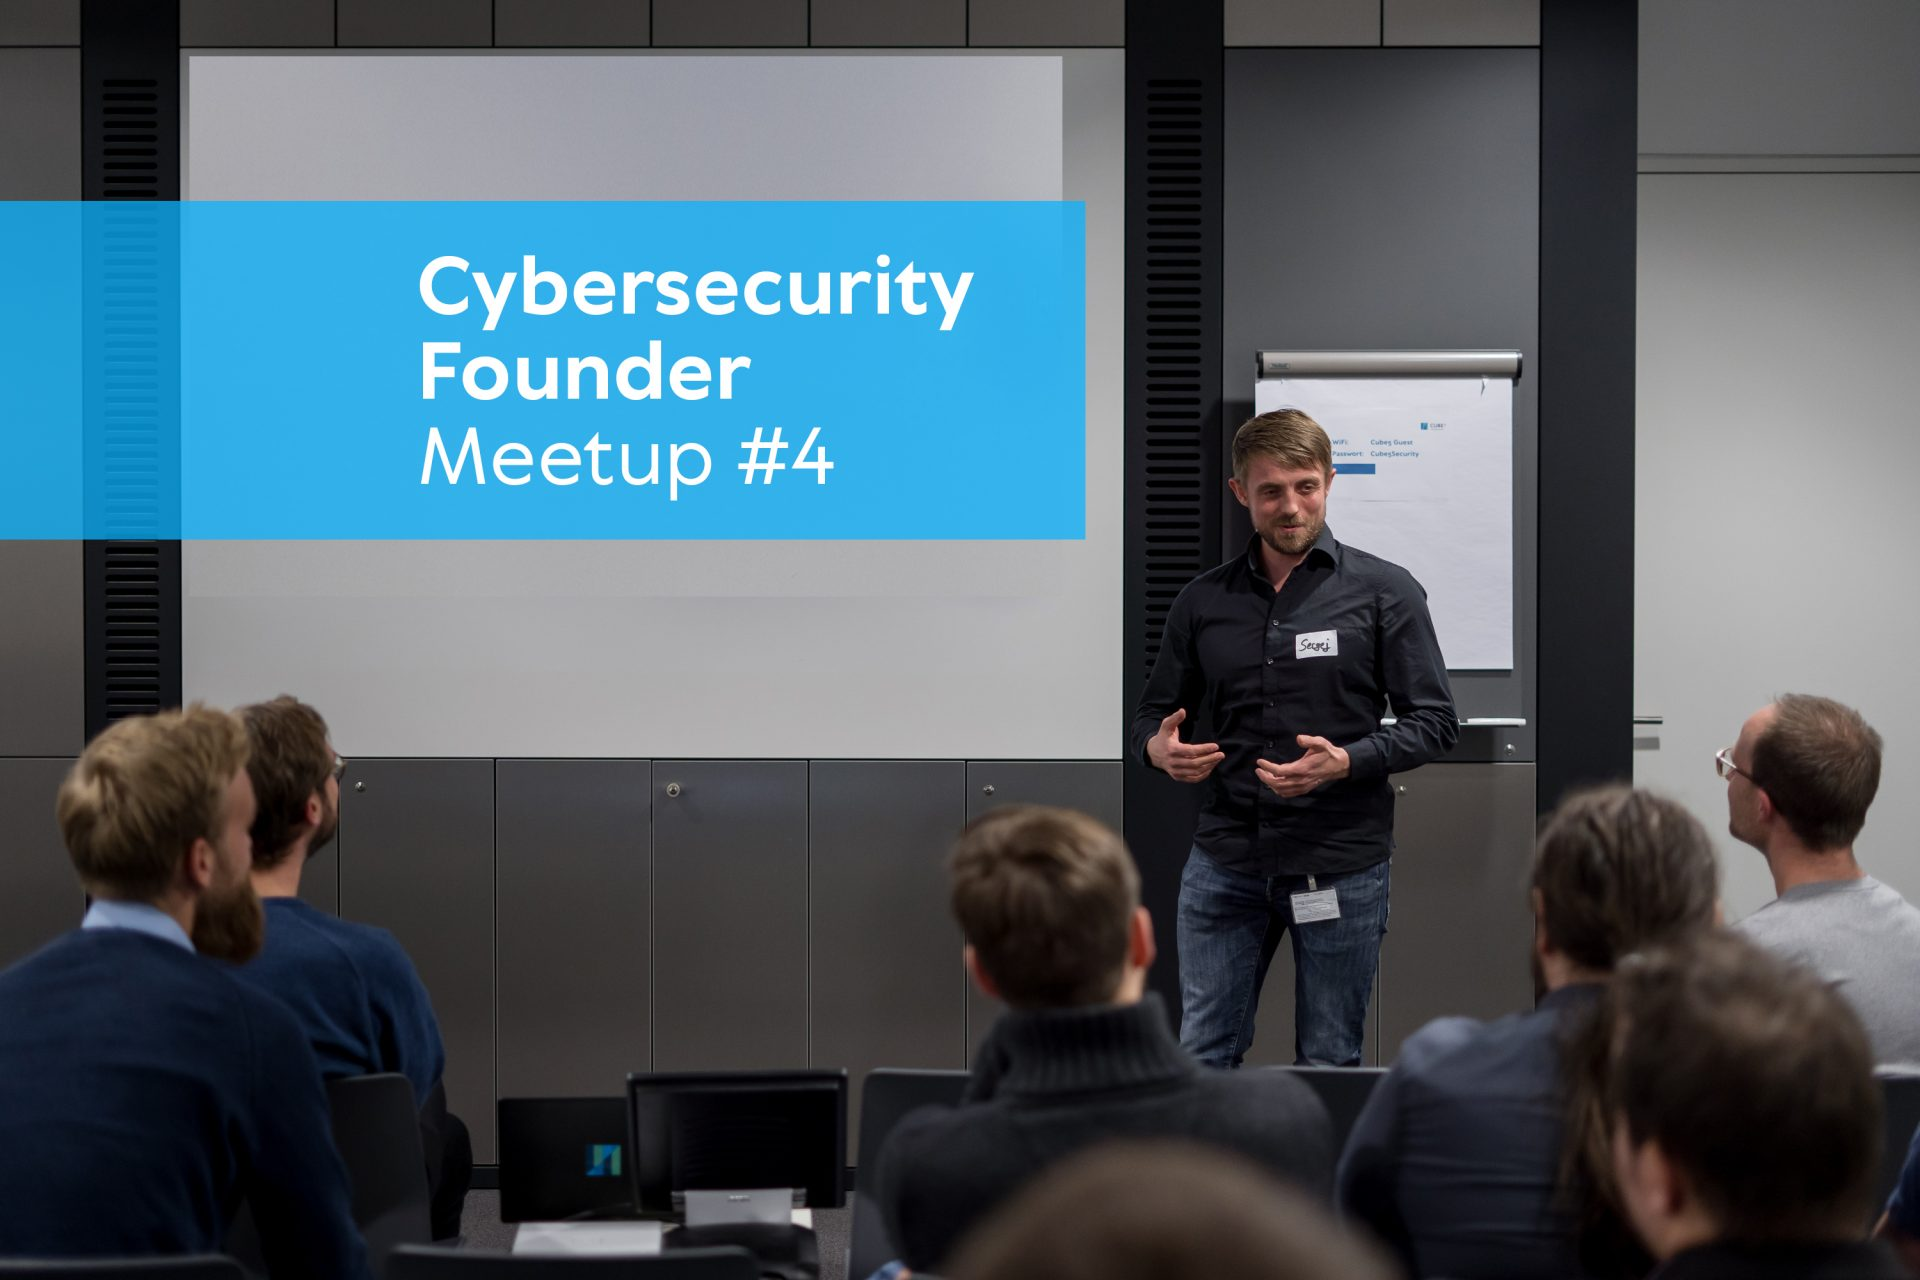 Cybersecurity Founder Meetup Cube 5